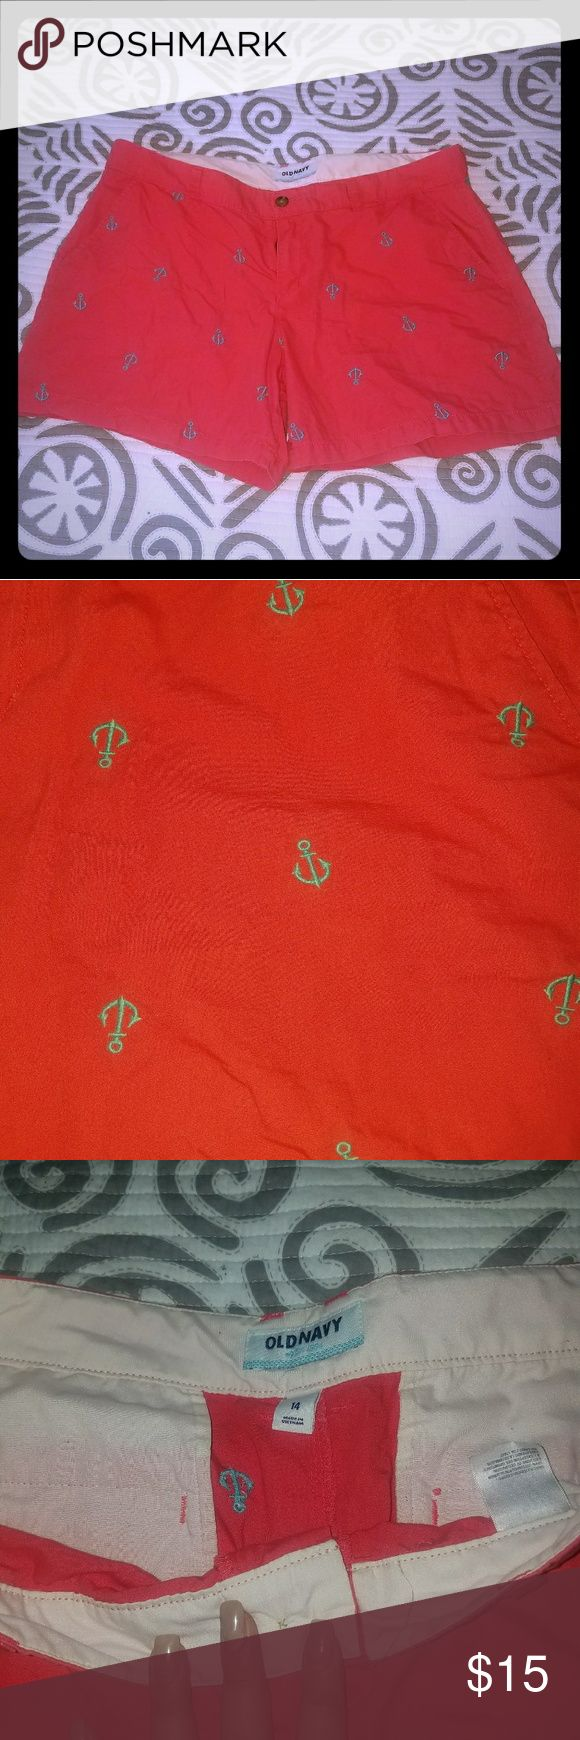 OLD NAVY CORAL AND TEAL ANCHOR SHORTS These coral shorts with achors embroidered on them. These are perfect for a day on the boat! These are old navy chino material. Old Navy Shorts